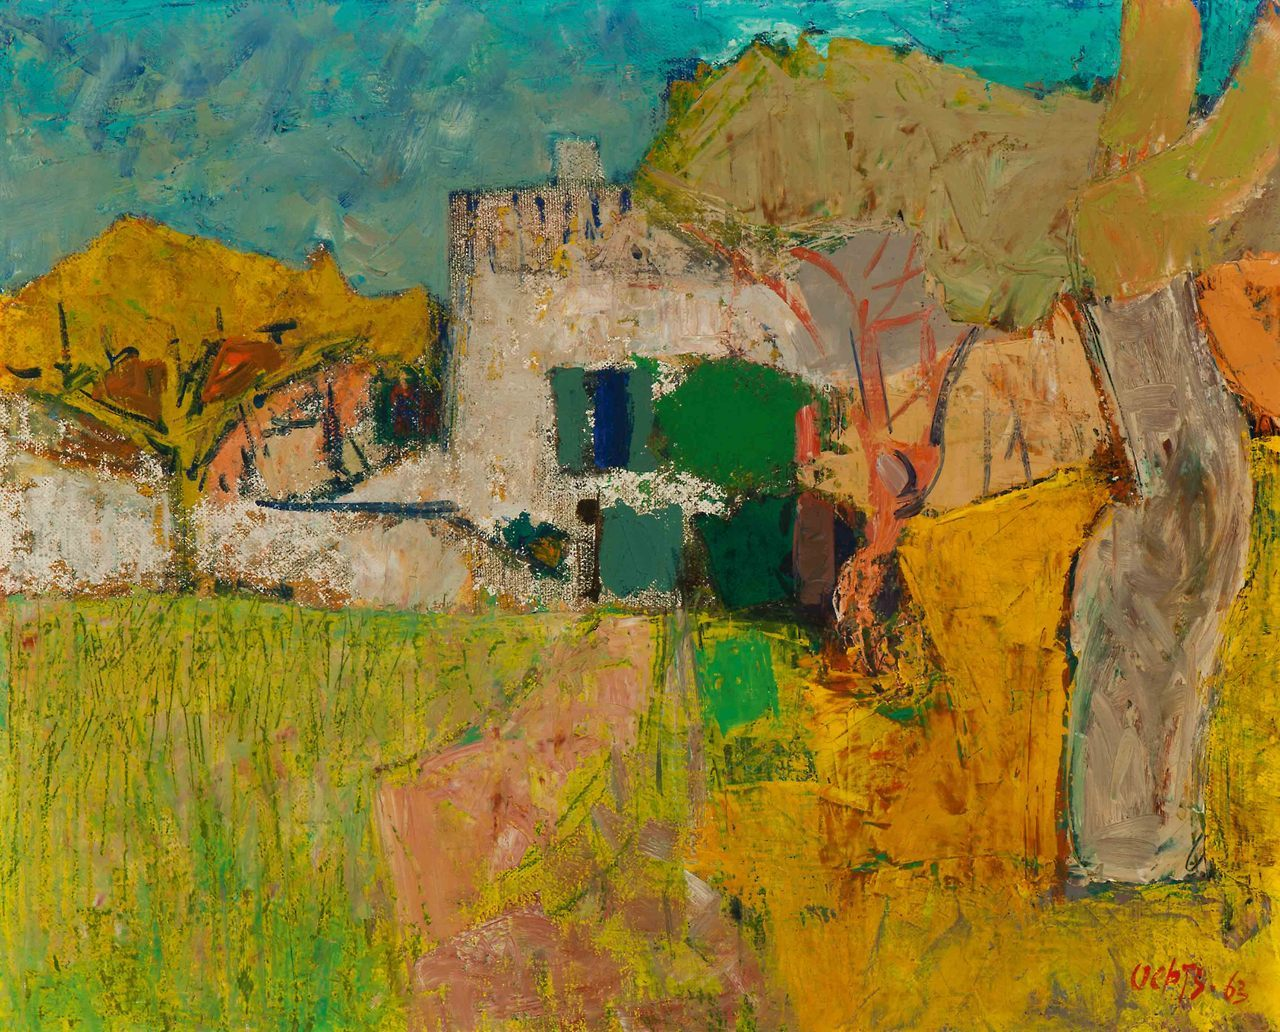 """amare-habeo: """" Wim Oepts (Dutch, 1904 - 1988) Provence, 1963 Oil on canvas, 33 x 41 cm """""""